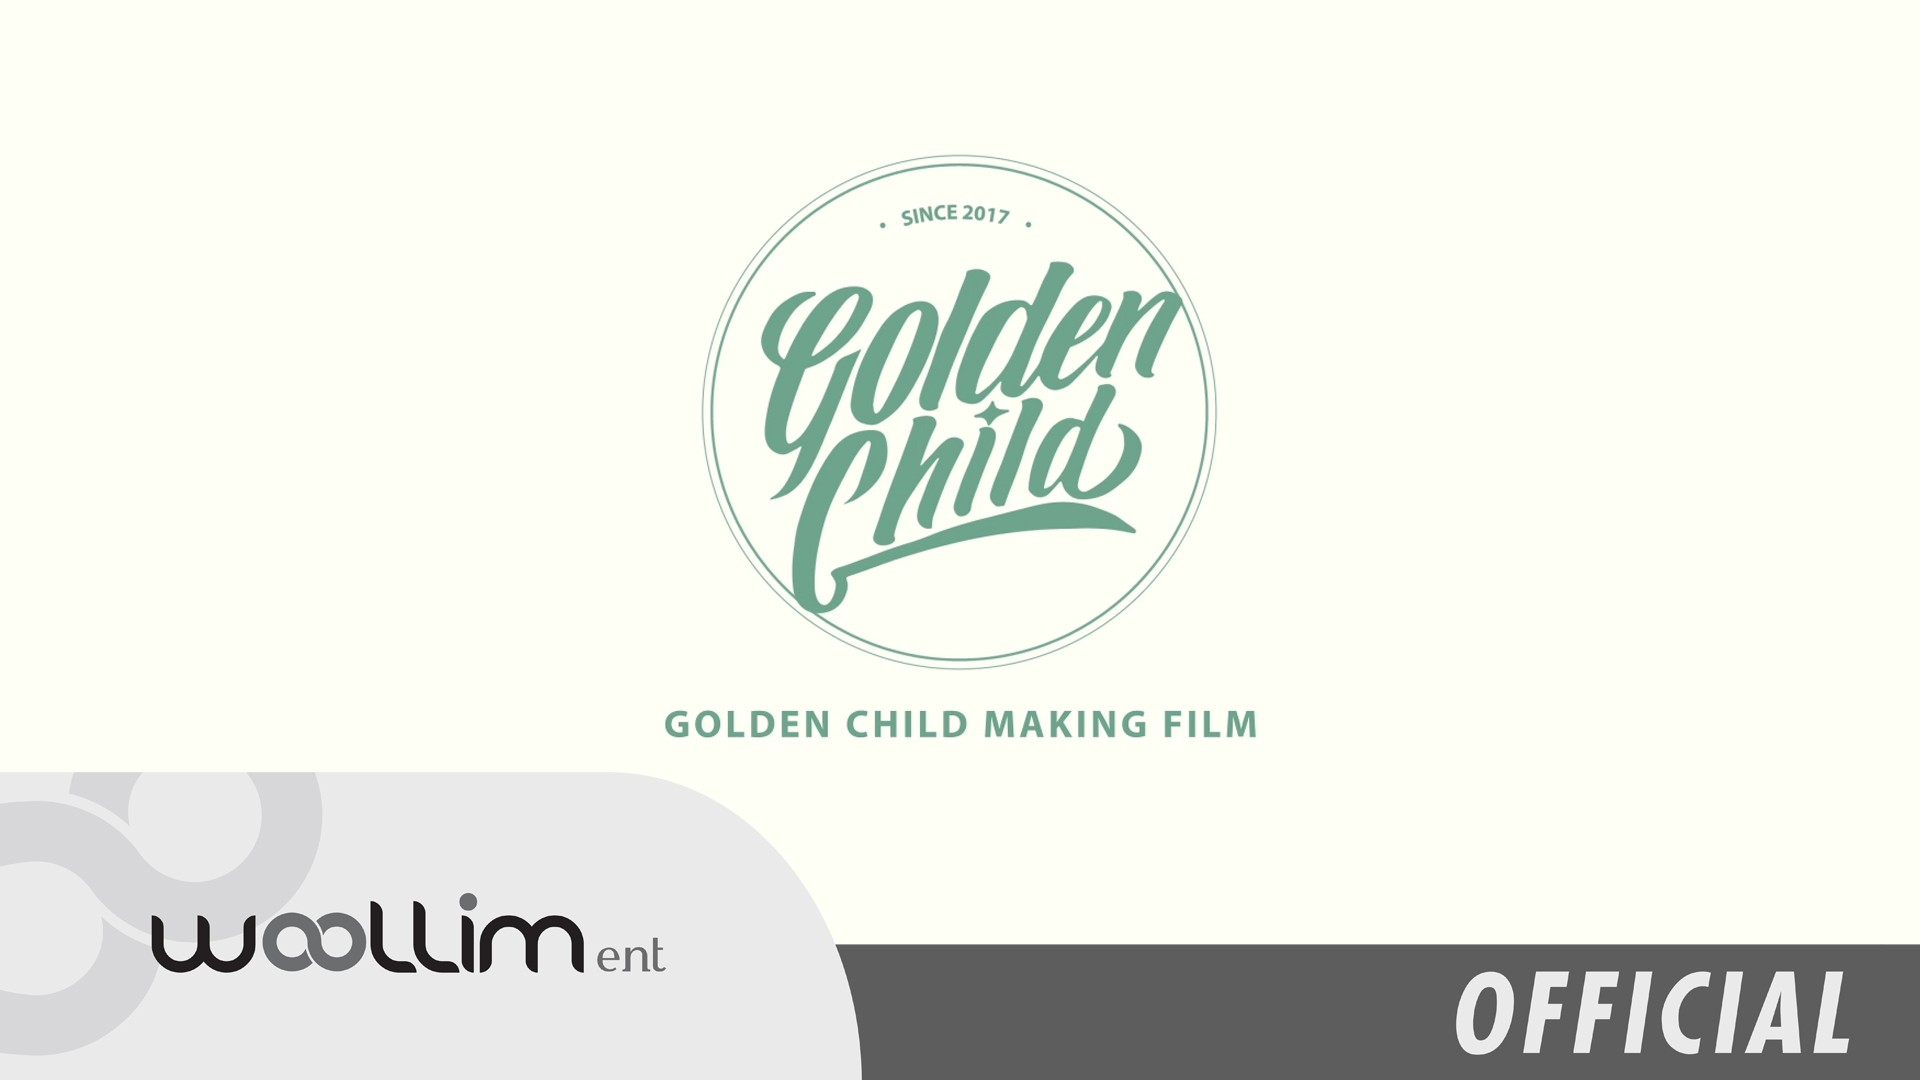 골든차일드(Golden Child) Making Video #1